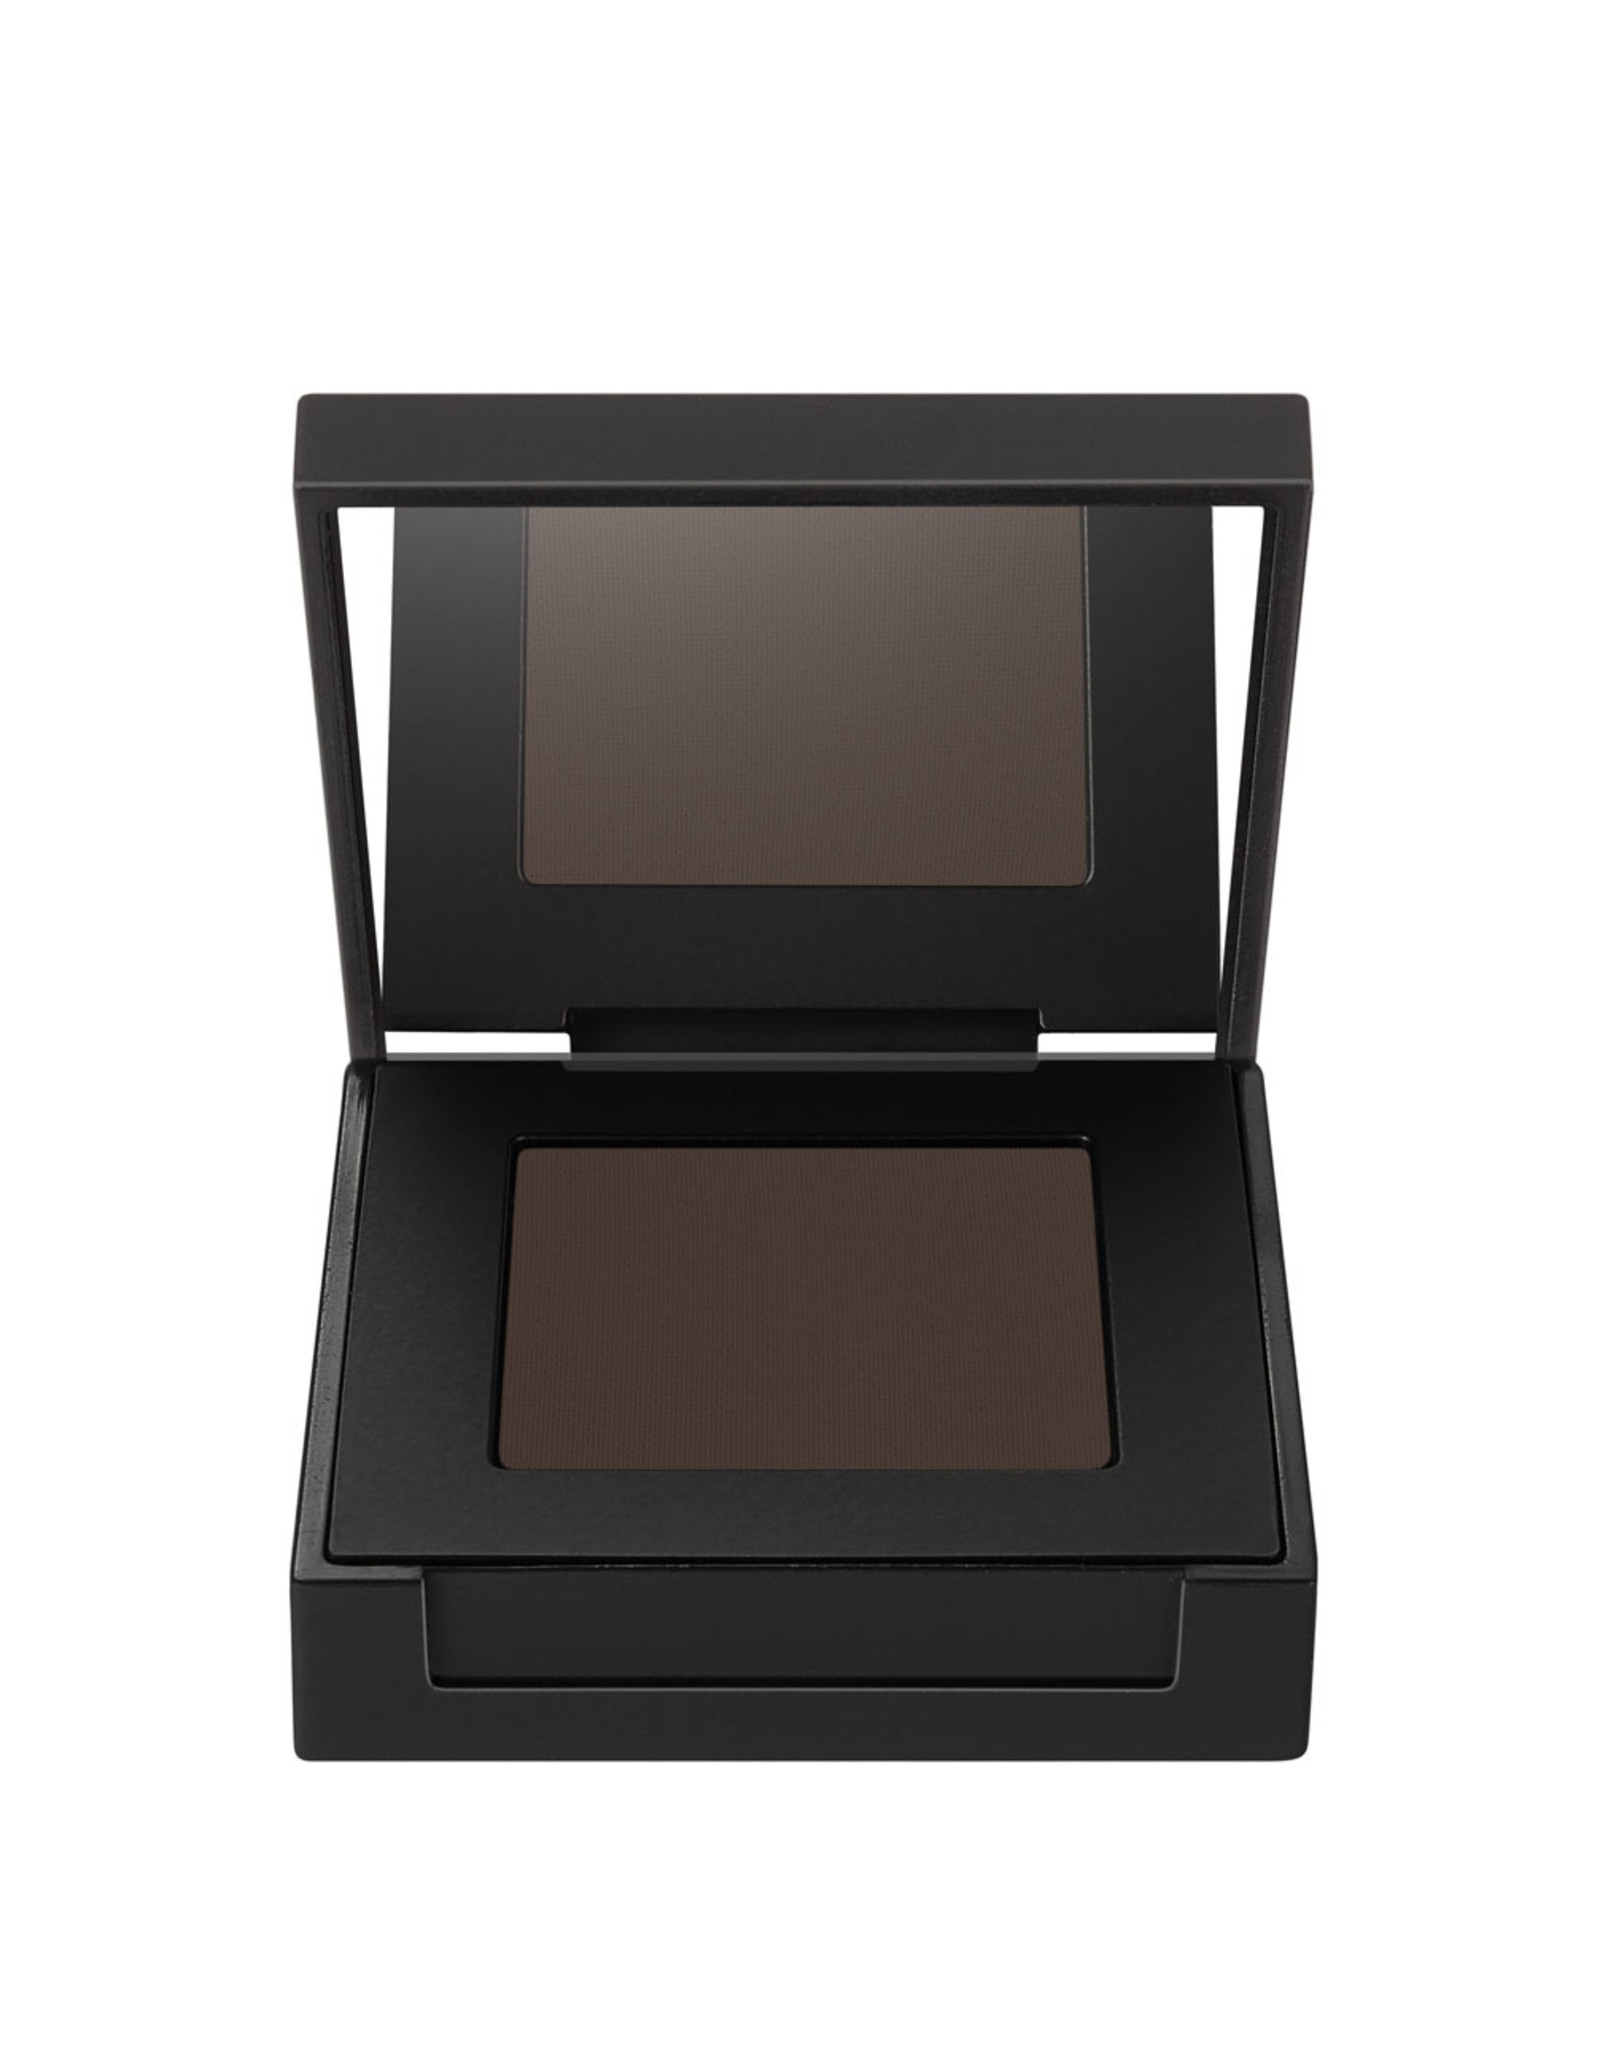 SOTHYS -  50%  Eyebrow Powder - Taupe